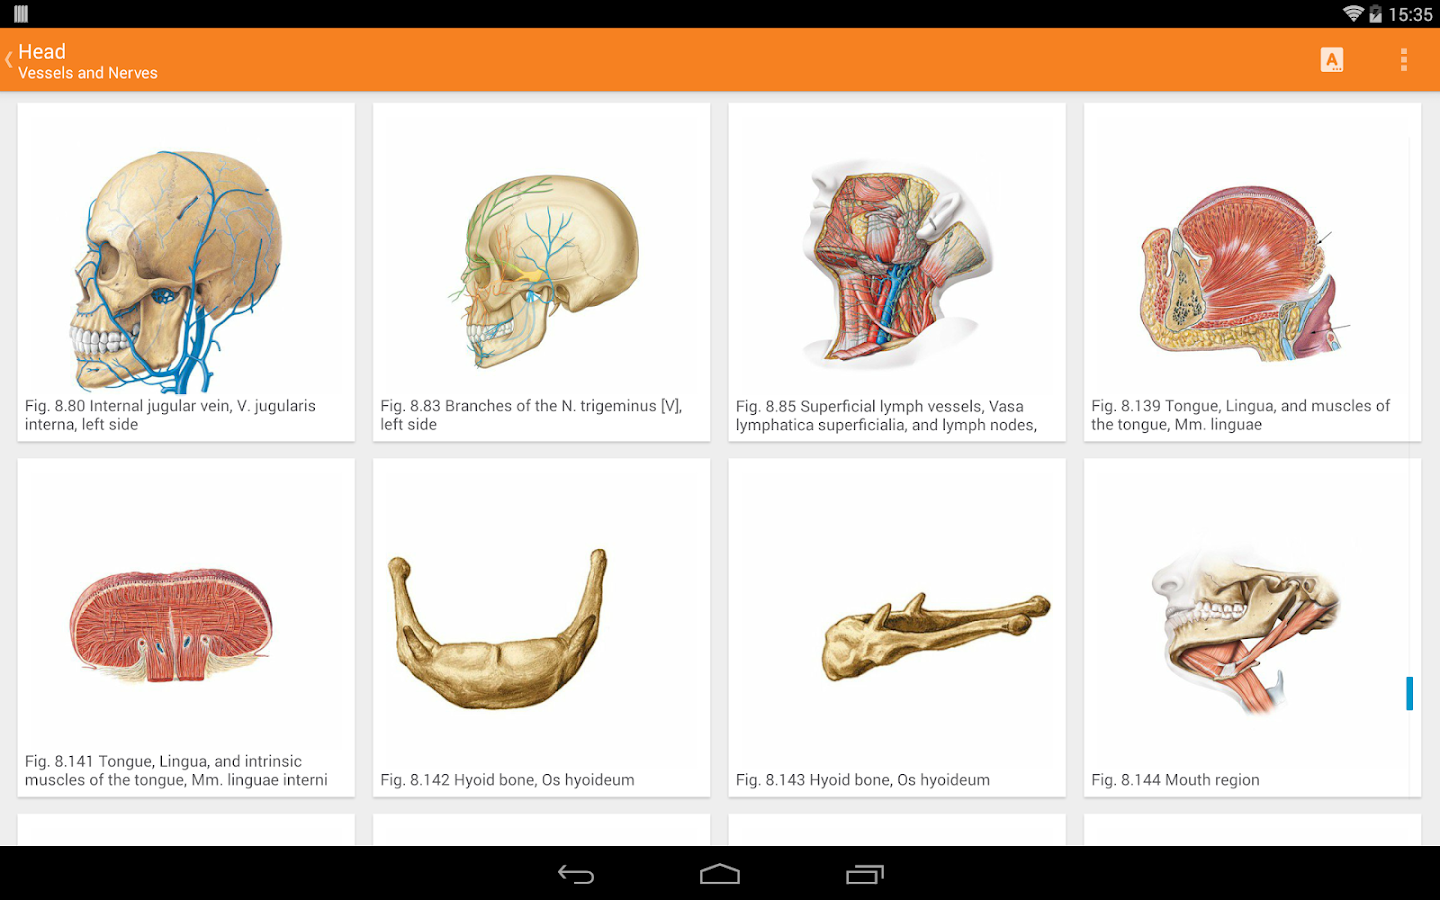 Sobotta Anatomy Atlas Screenshot 9